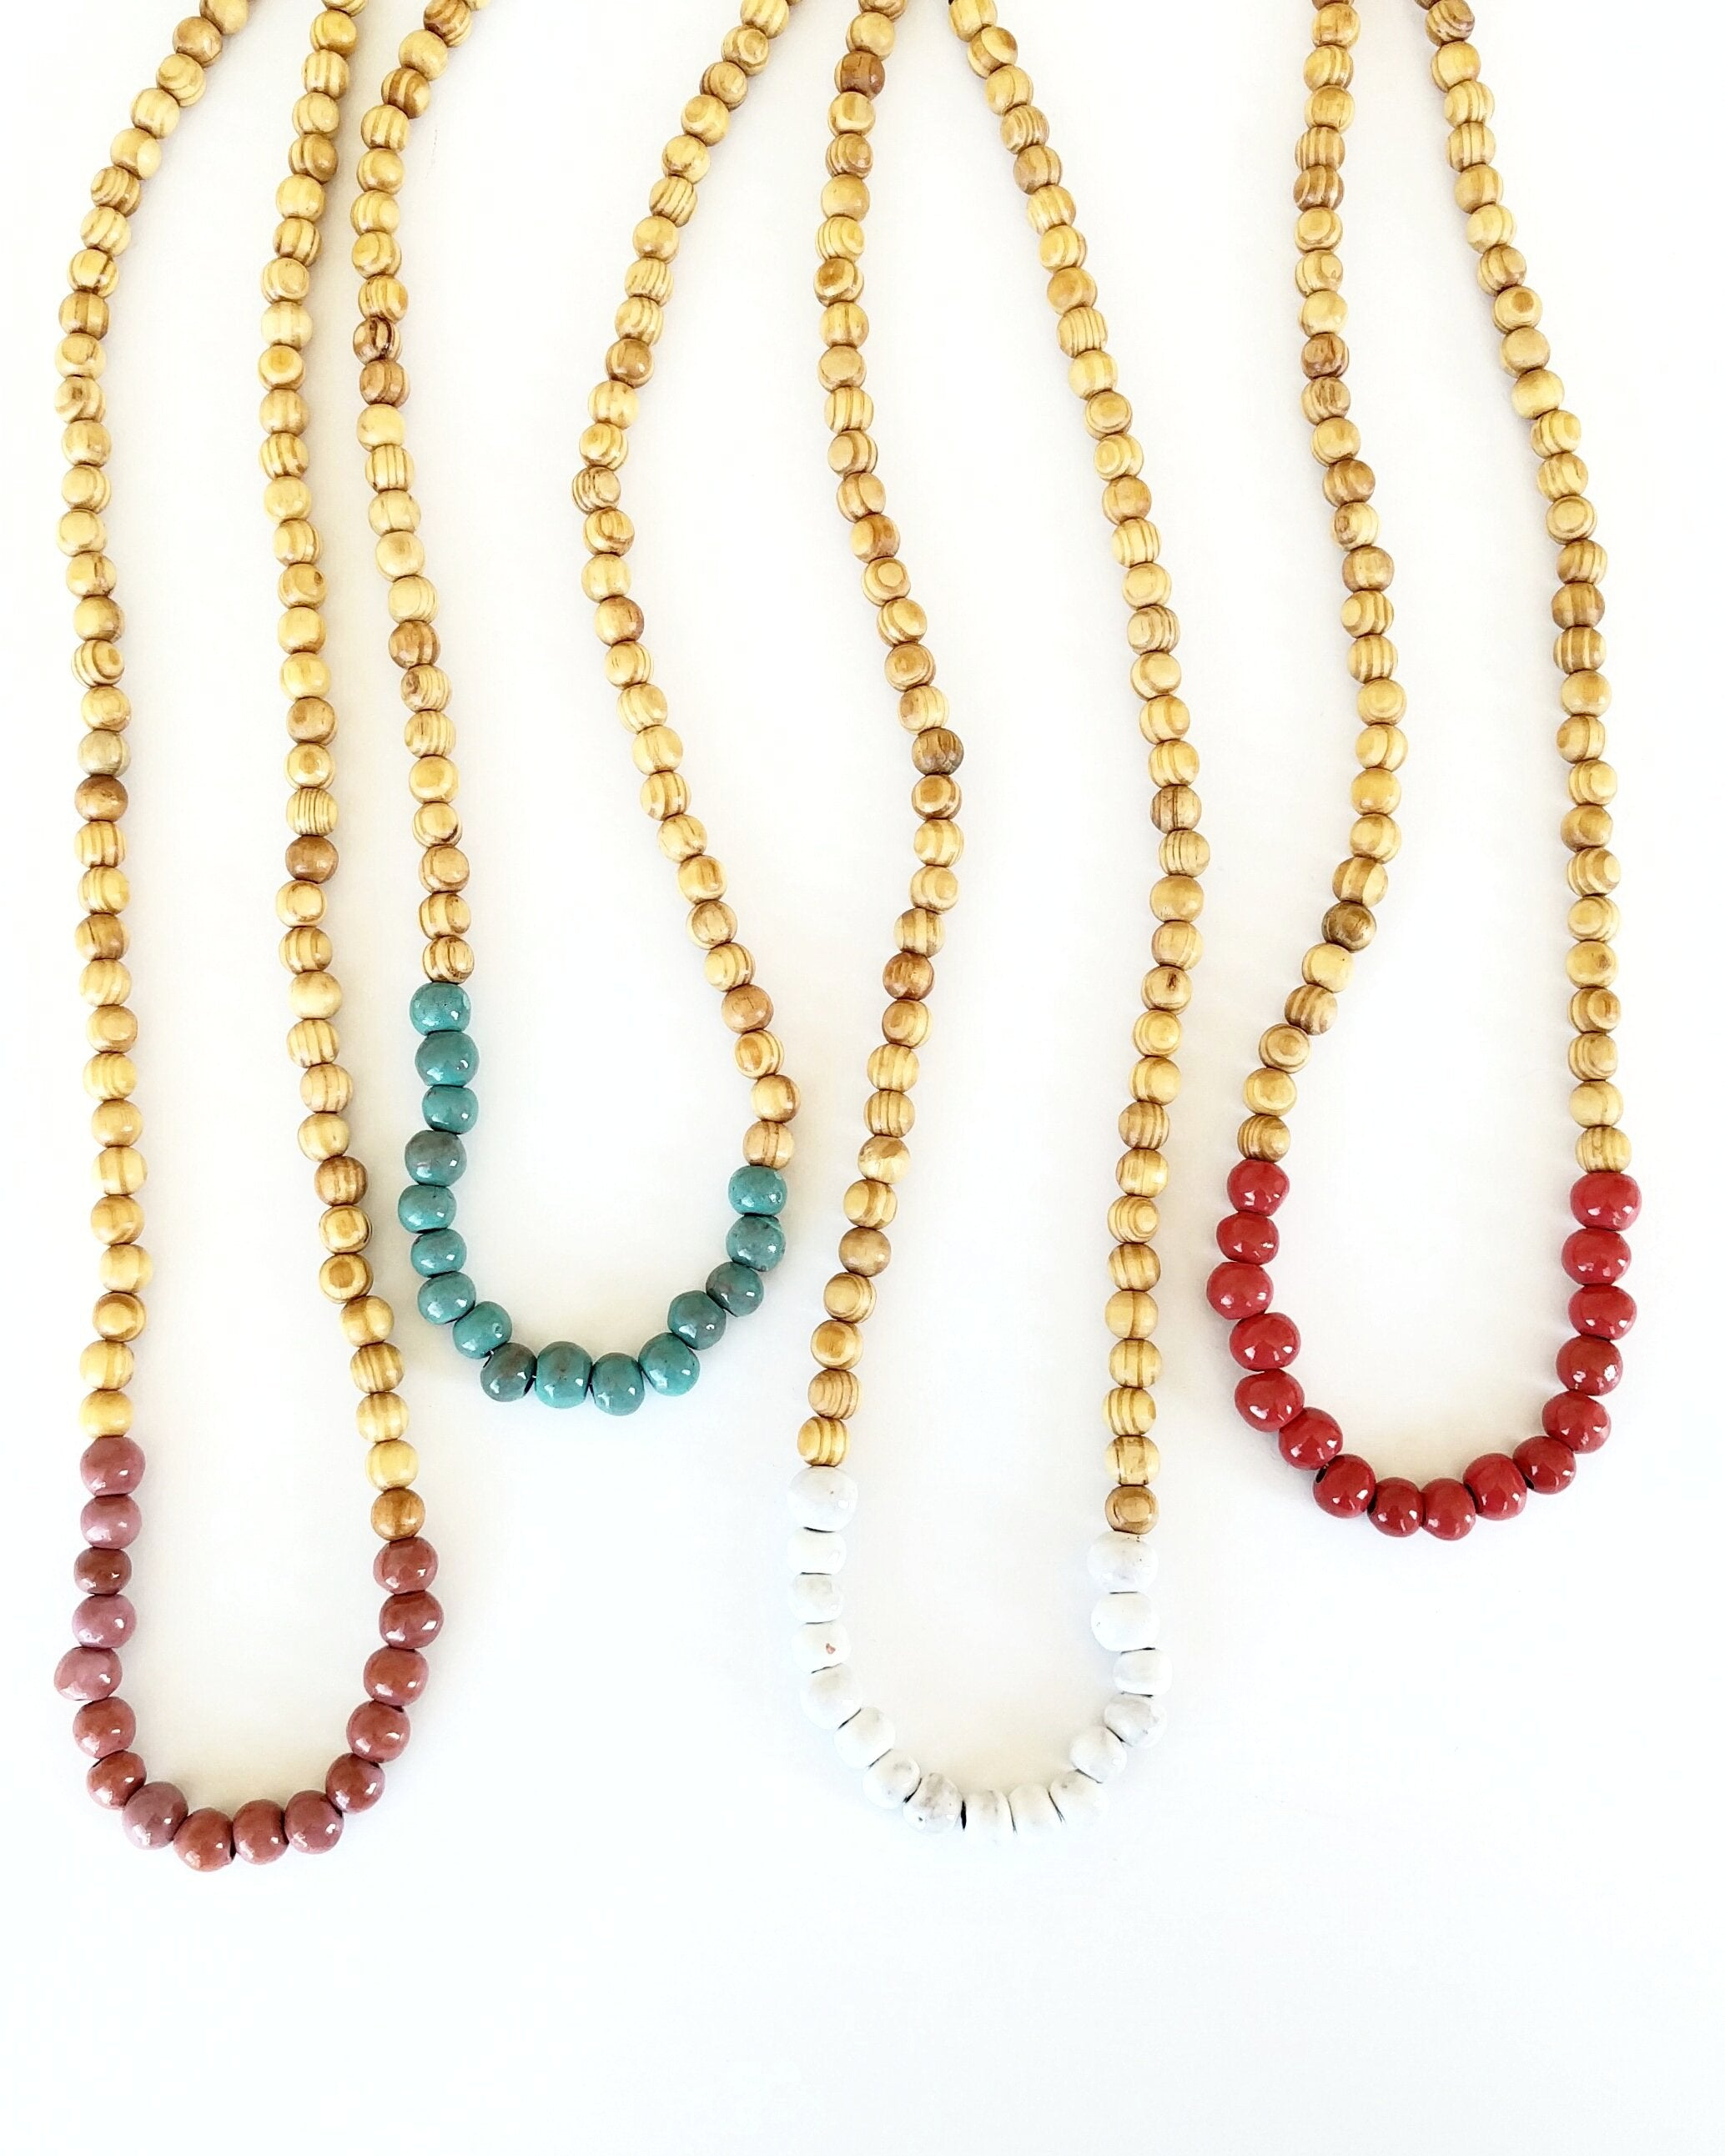 Alexis Bare Necklace || Choose Color